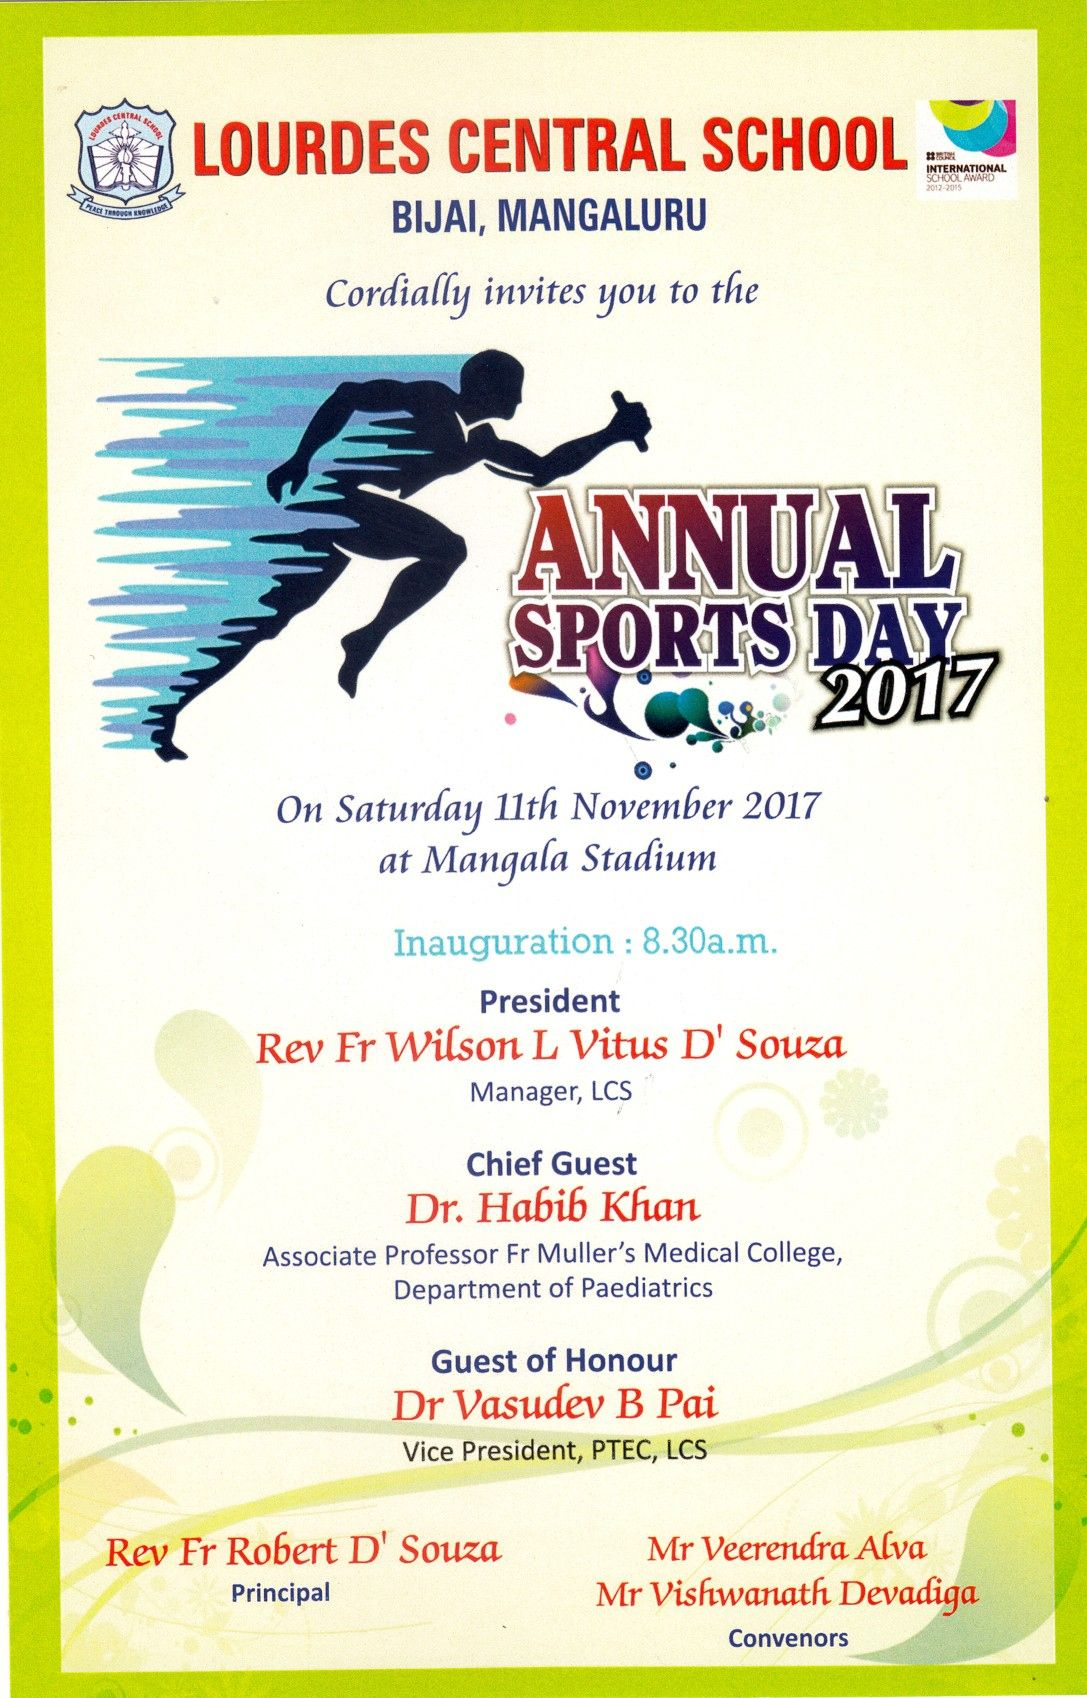 13 New Annual Day Invitation Card Background Photos in 2020 | Sports day  invitation, Sports day, Sports invitations